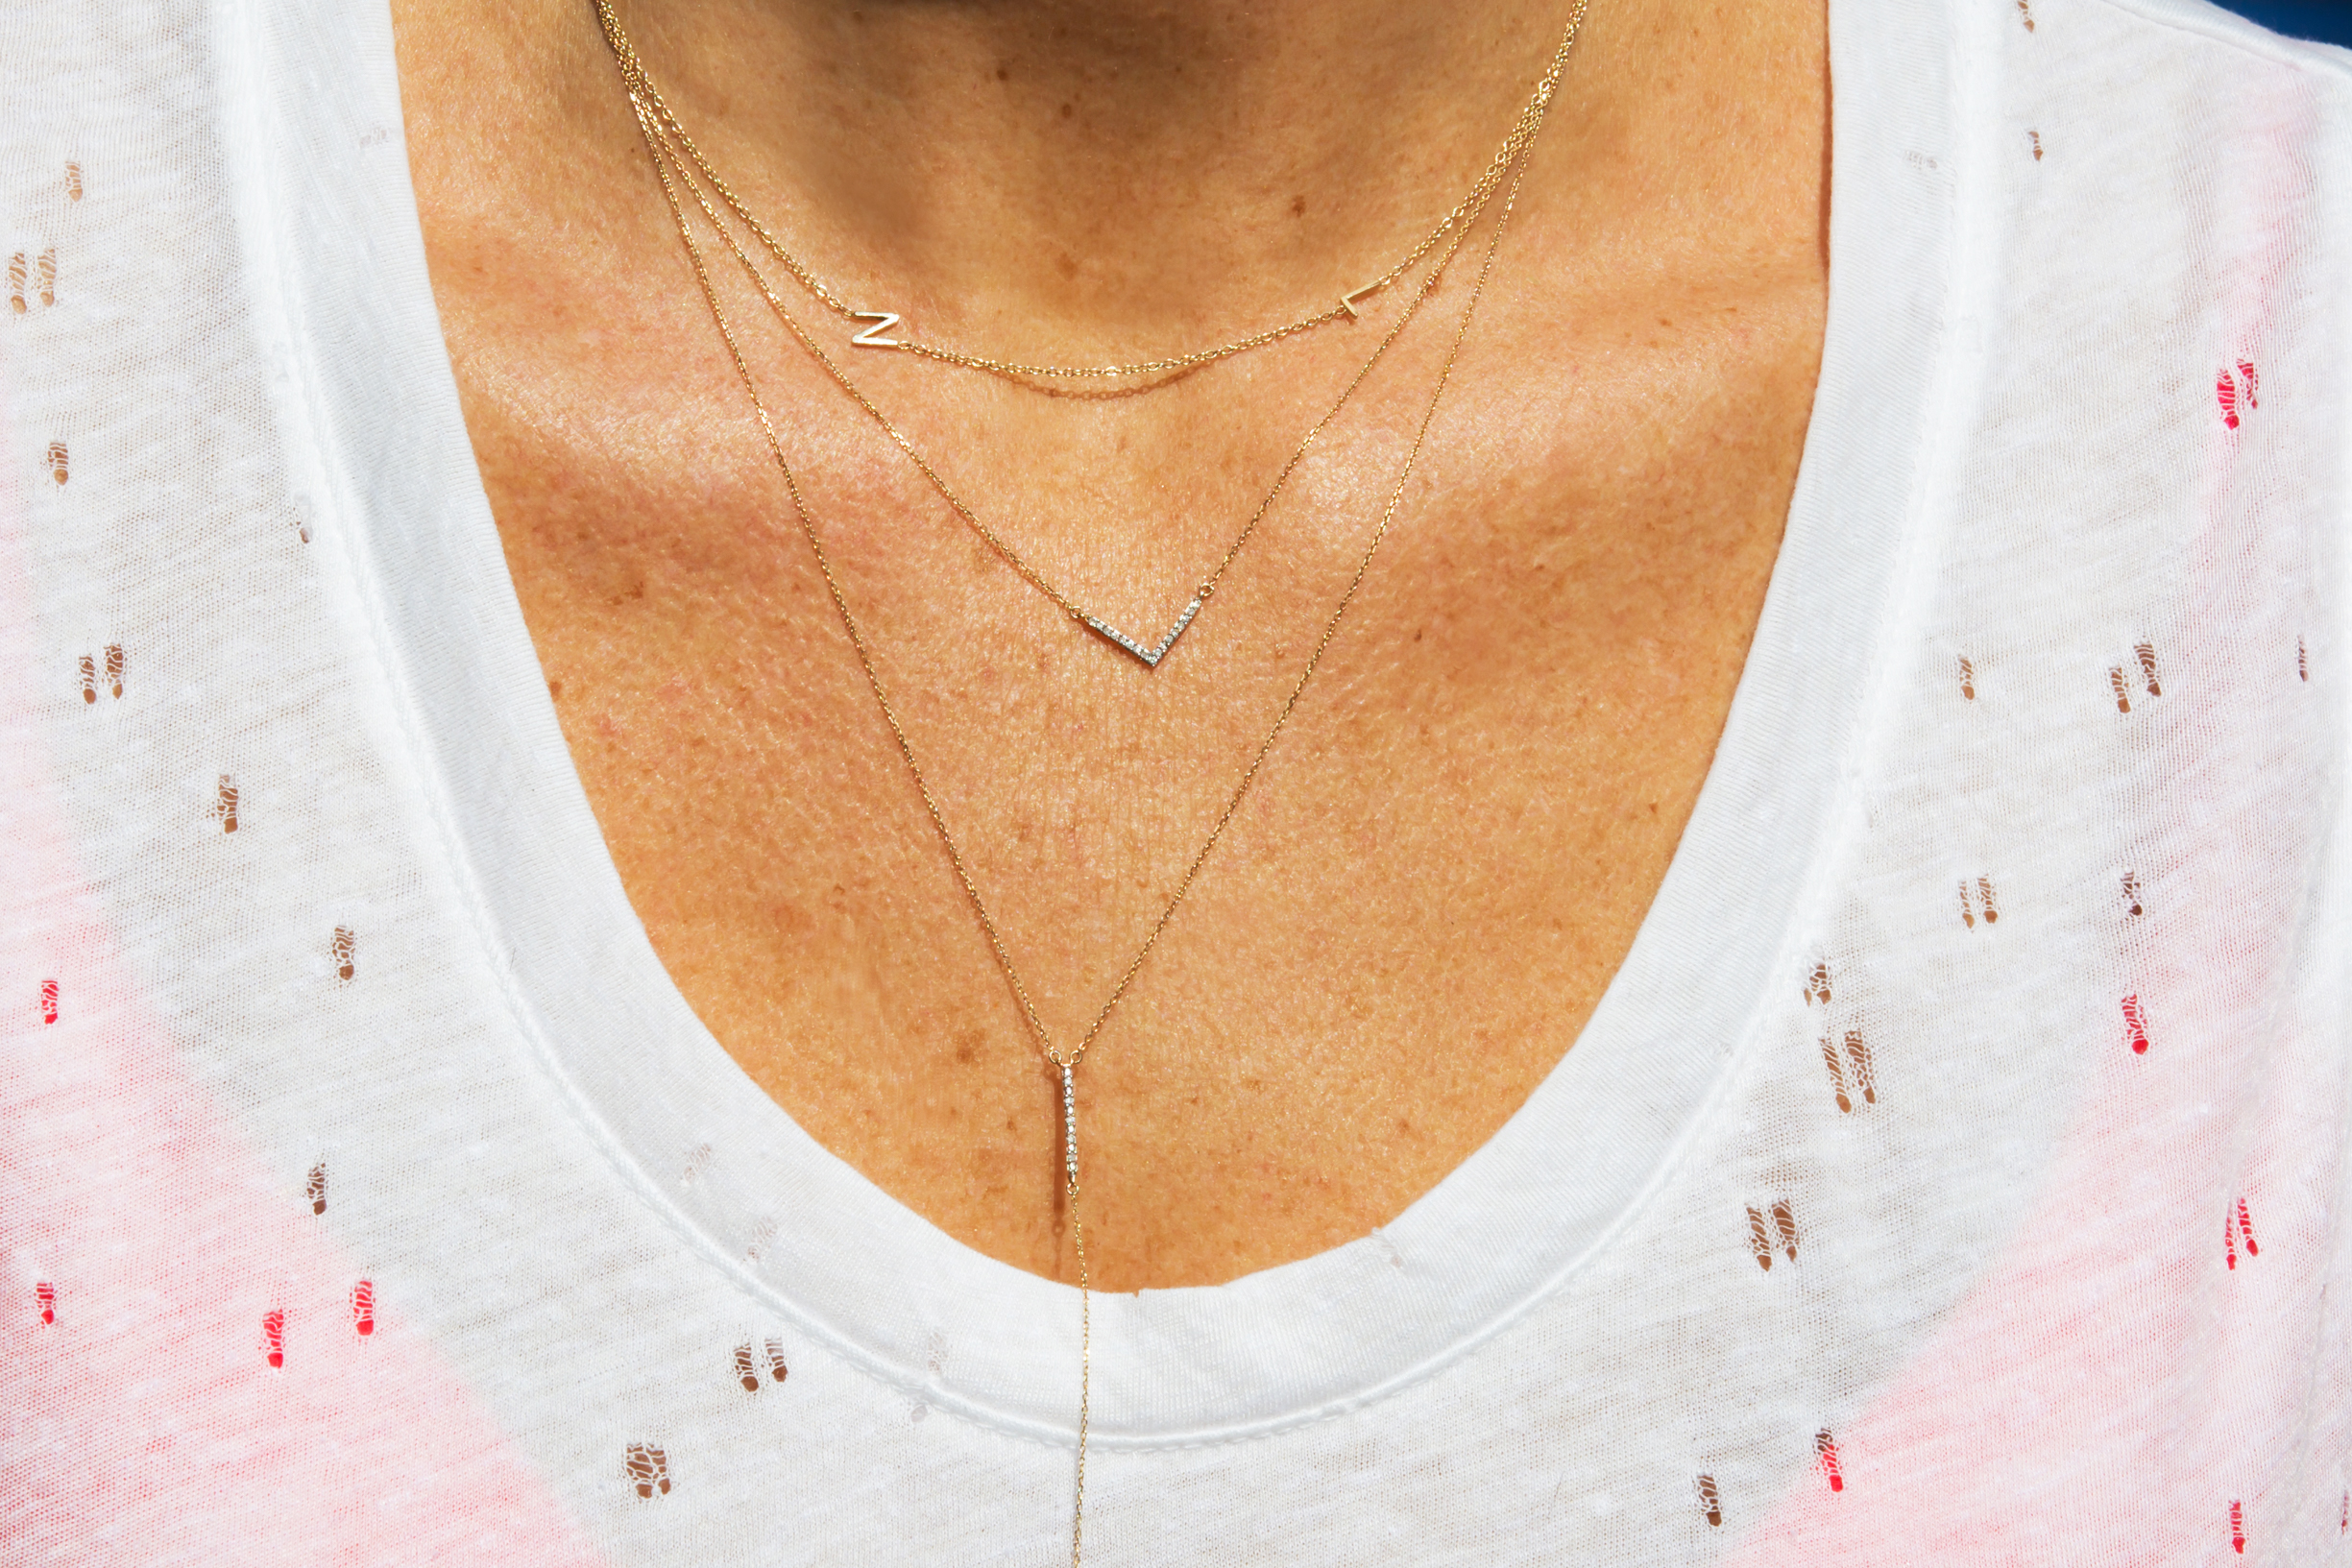 initial necklace the right hand gal for mademoiselle jules blog for mothers day gift idea